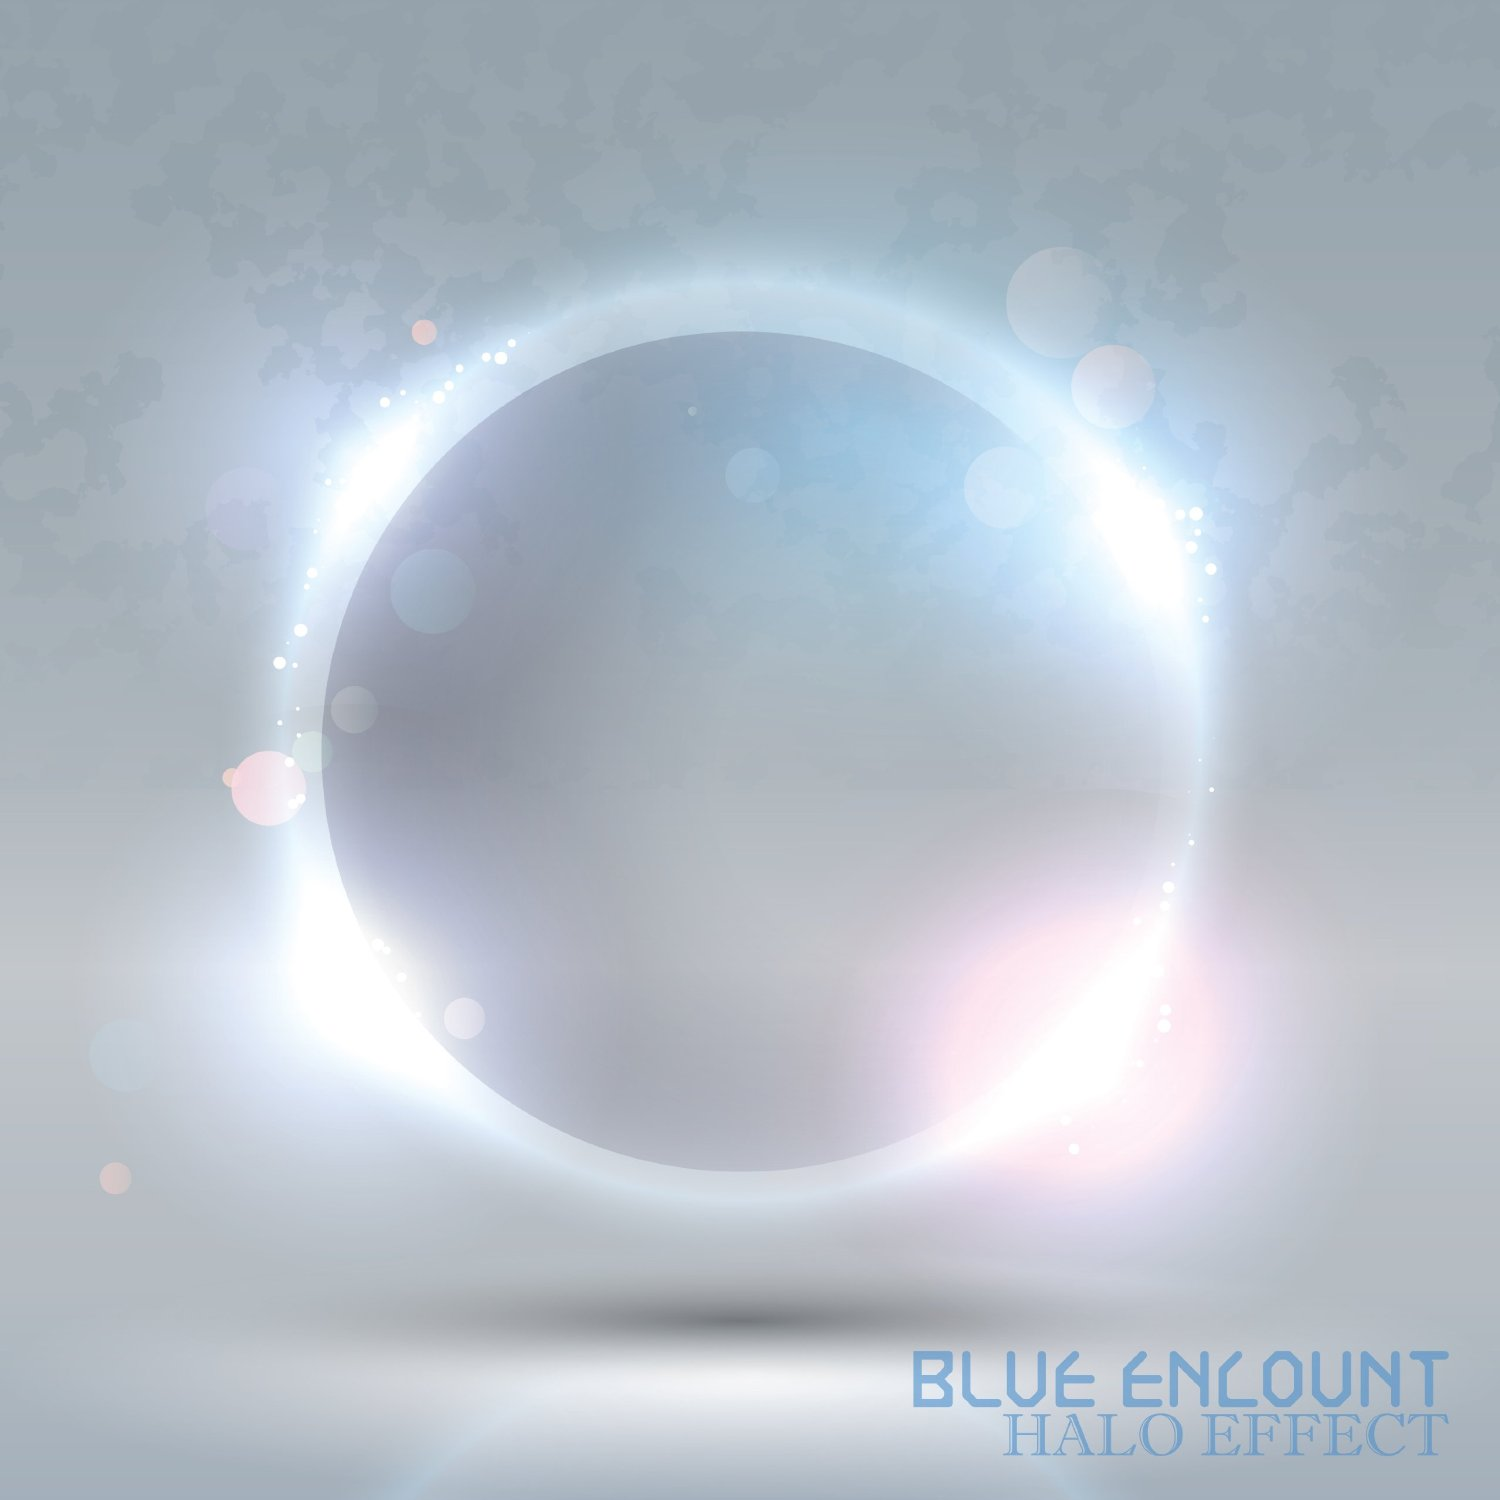 Album] BLUE ENCOUNT - HALO EFFECT [2012 04 11] - アペニン